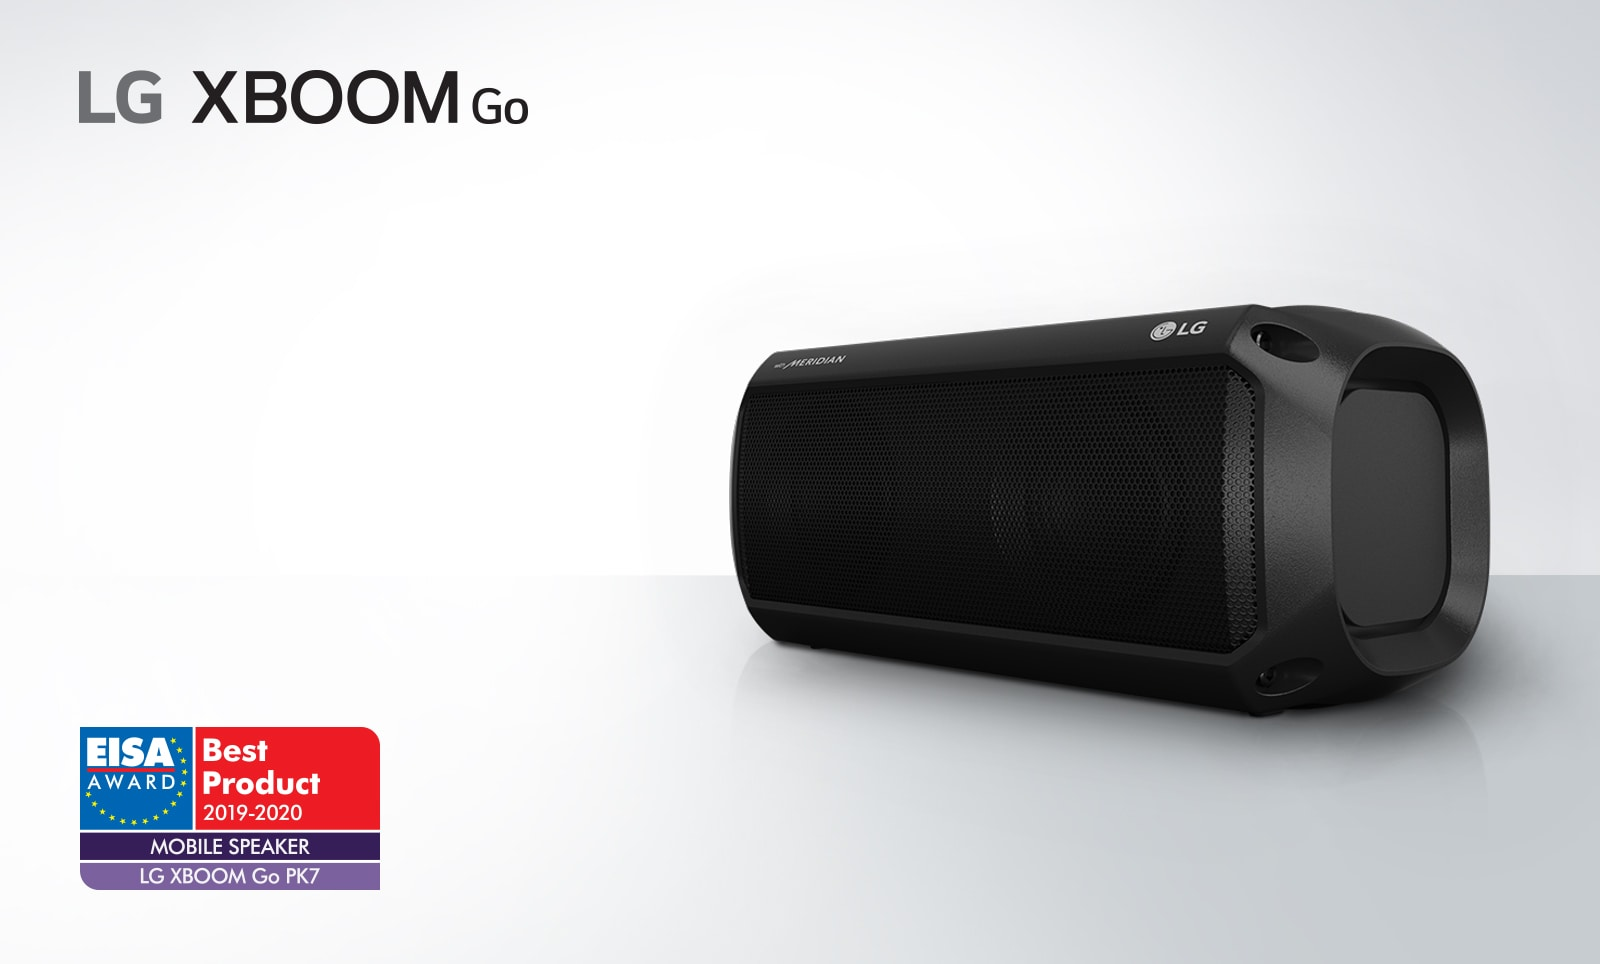 LG XBOOM Go Water Resistant Bluetooth Speaker with up to 12 Hour Playback ( PK3) | LG USA